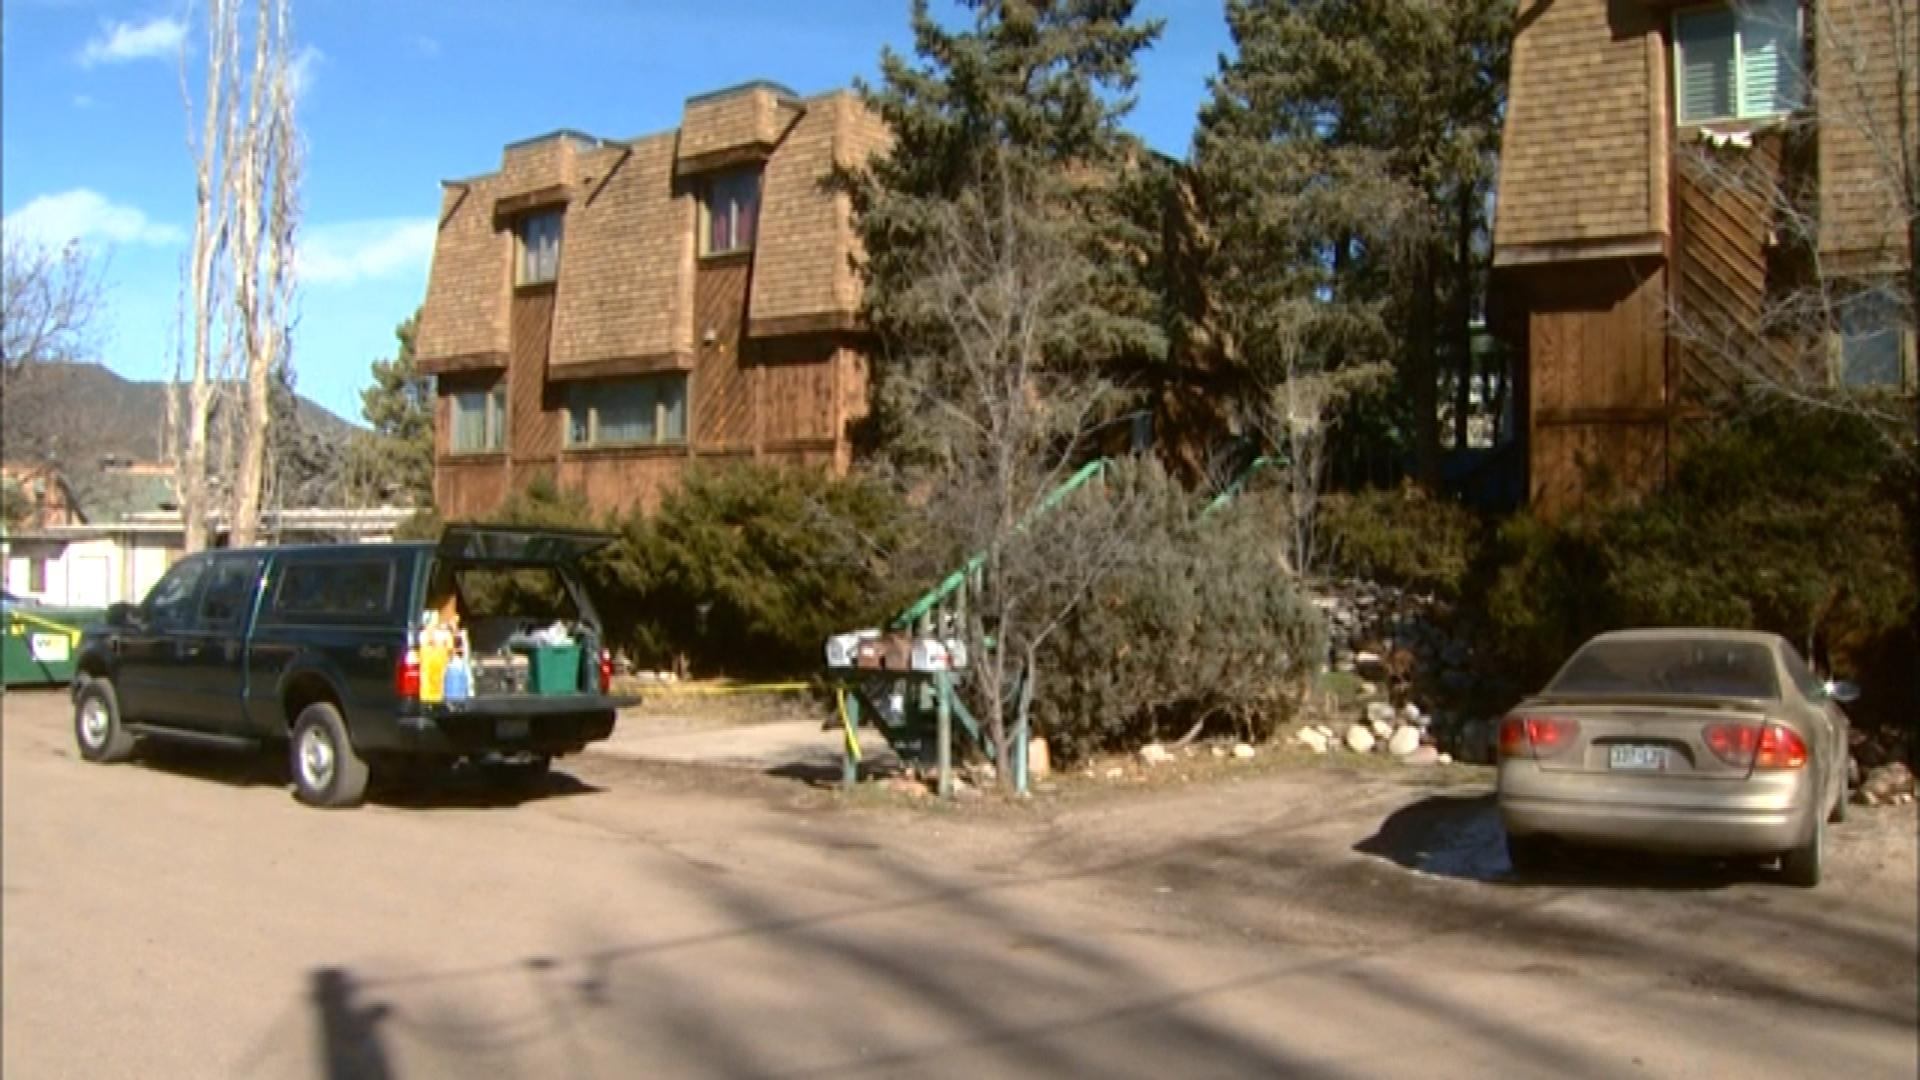 The apartment complex in Carbondale (credit: CBS)